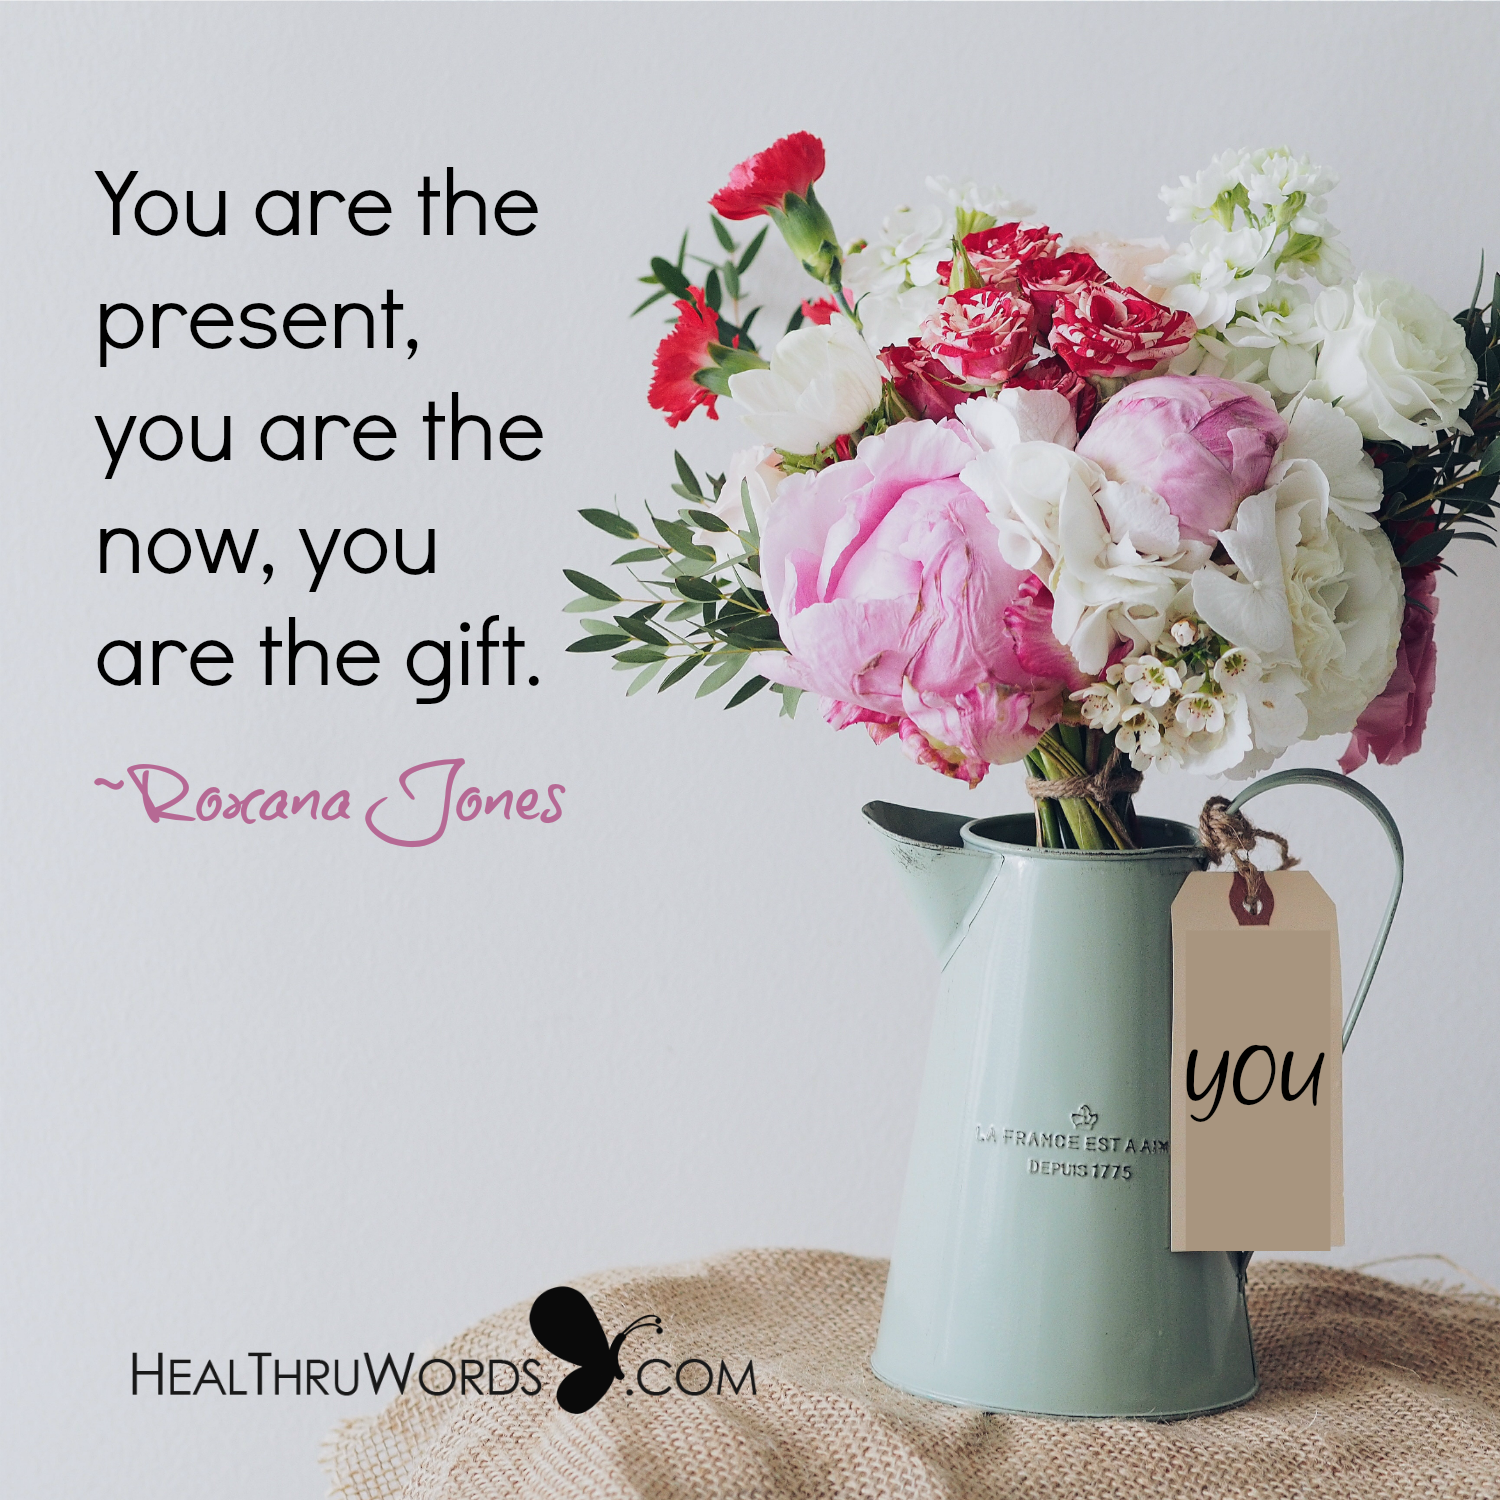 Inspirational Image: Presence of You